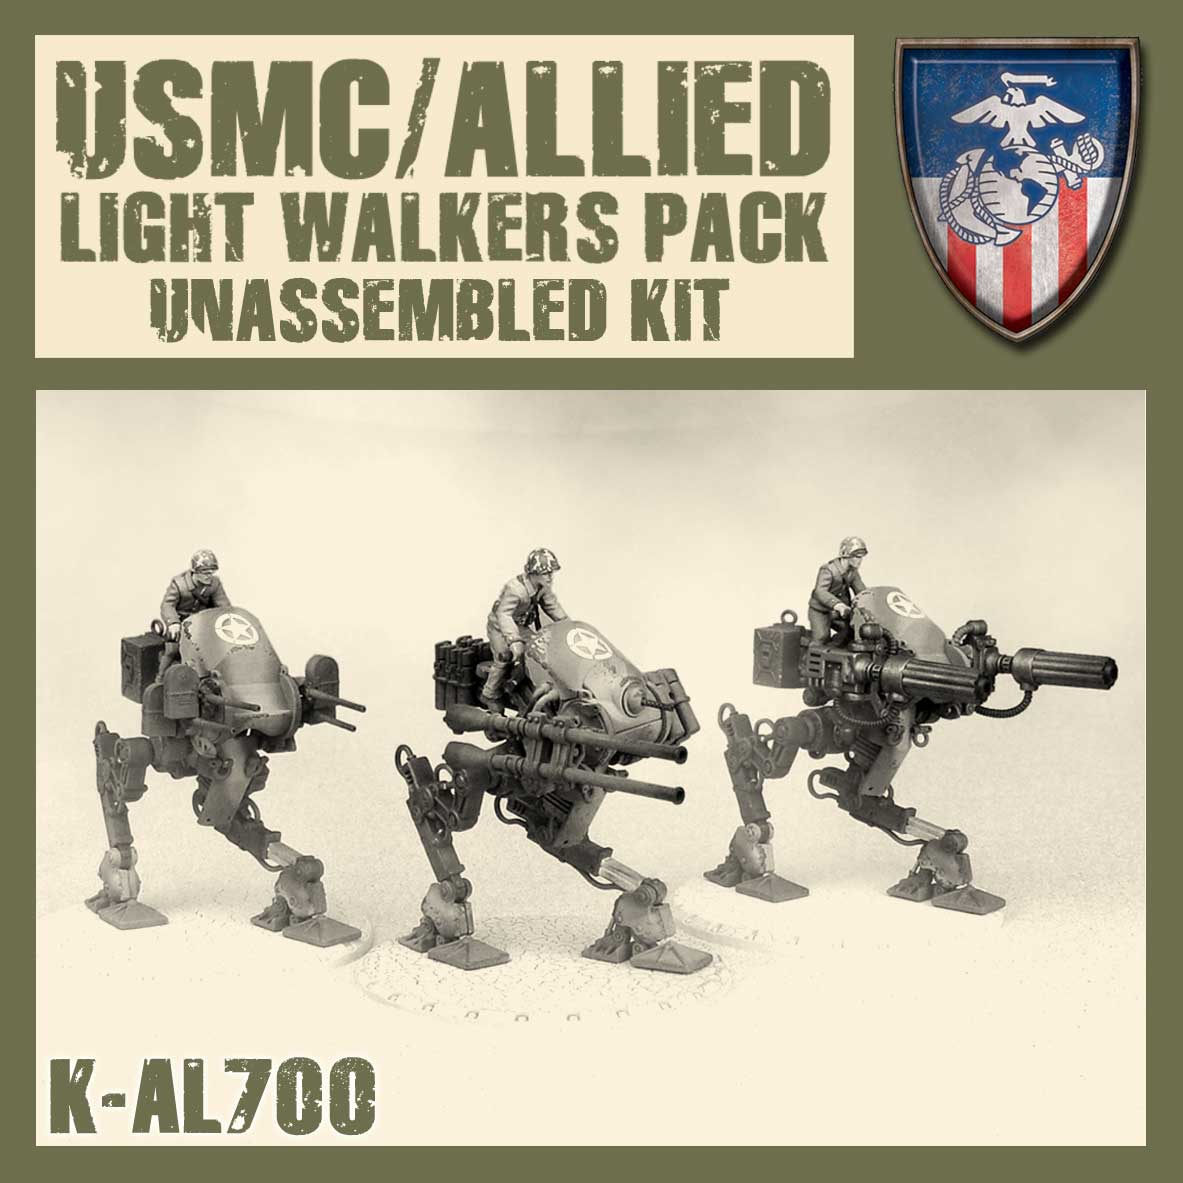 Lekki Mech Aliancki Zestaw – Kit (Allied Light Walkers Pack – Kit)